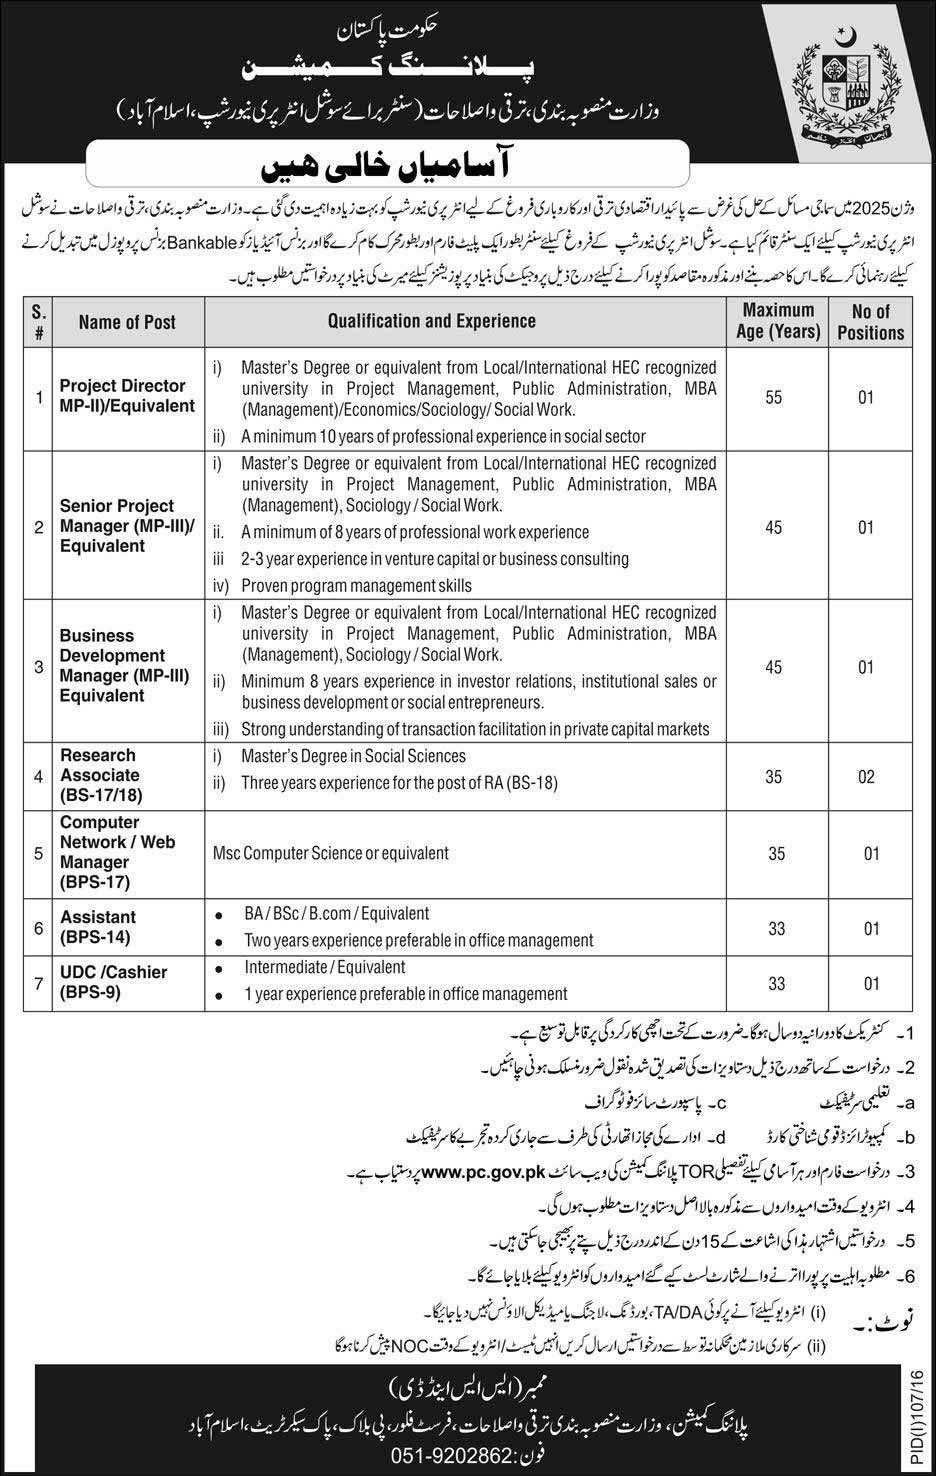 Planning Commission of Pakistan Jobs 2016